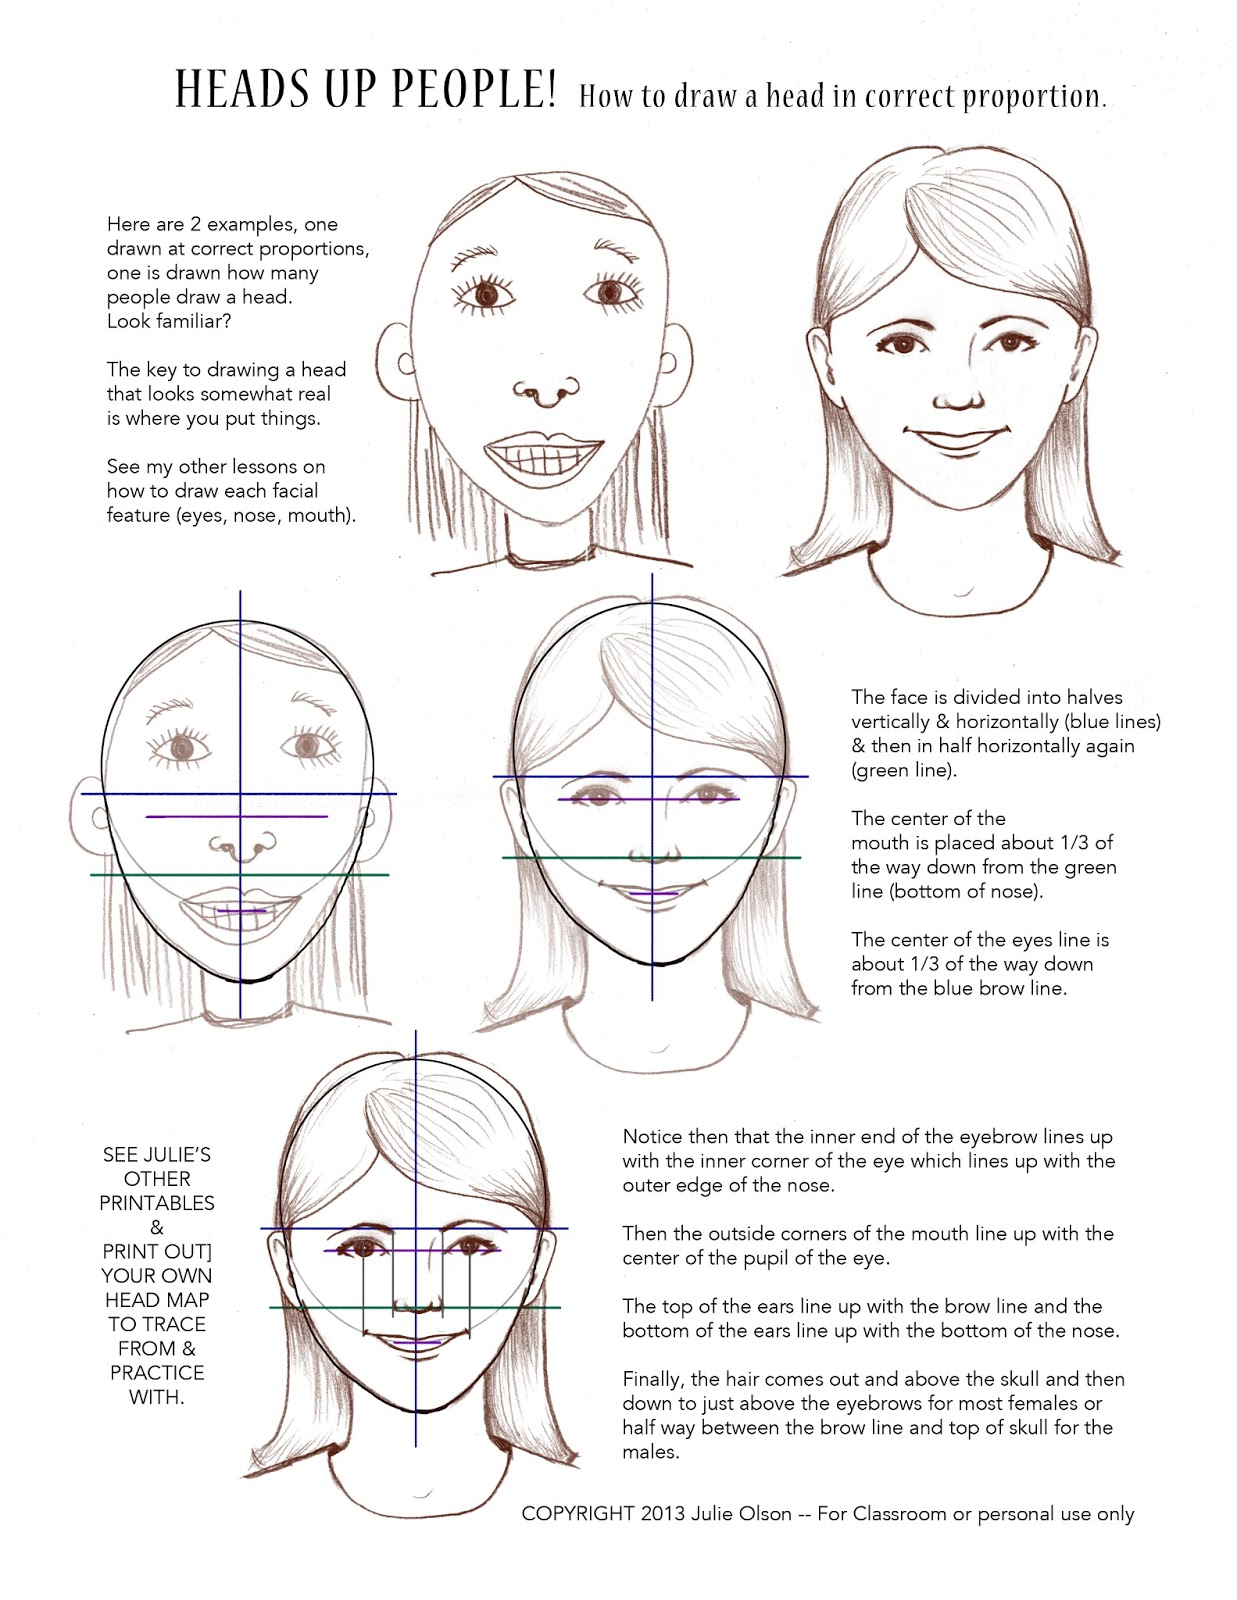 Julie Olson Books - Author/Illustrator: How to draw a face ...